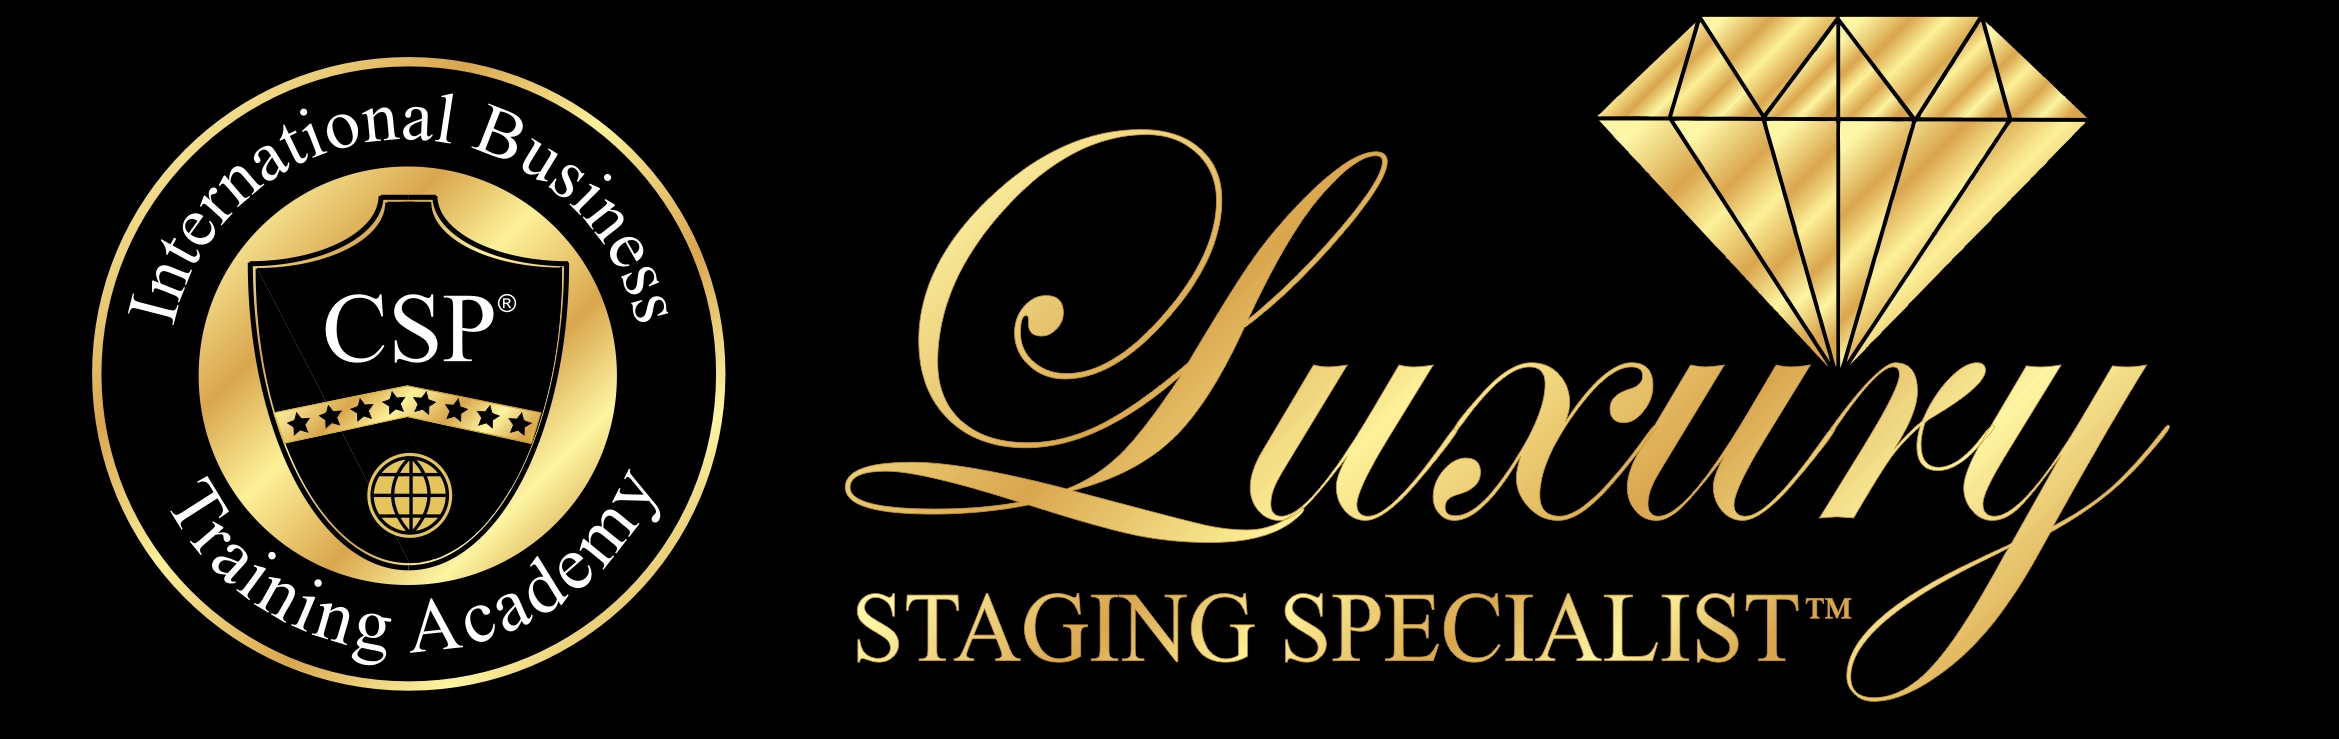 CSP-International-luxury-home-stager-professionals-banner (1)